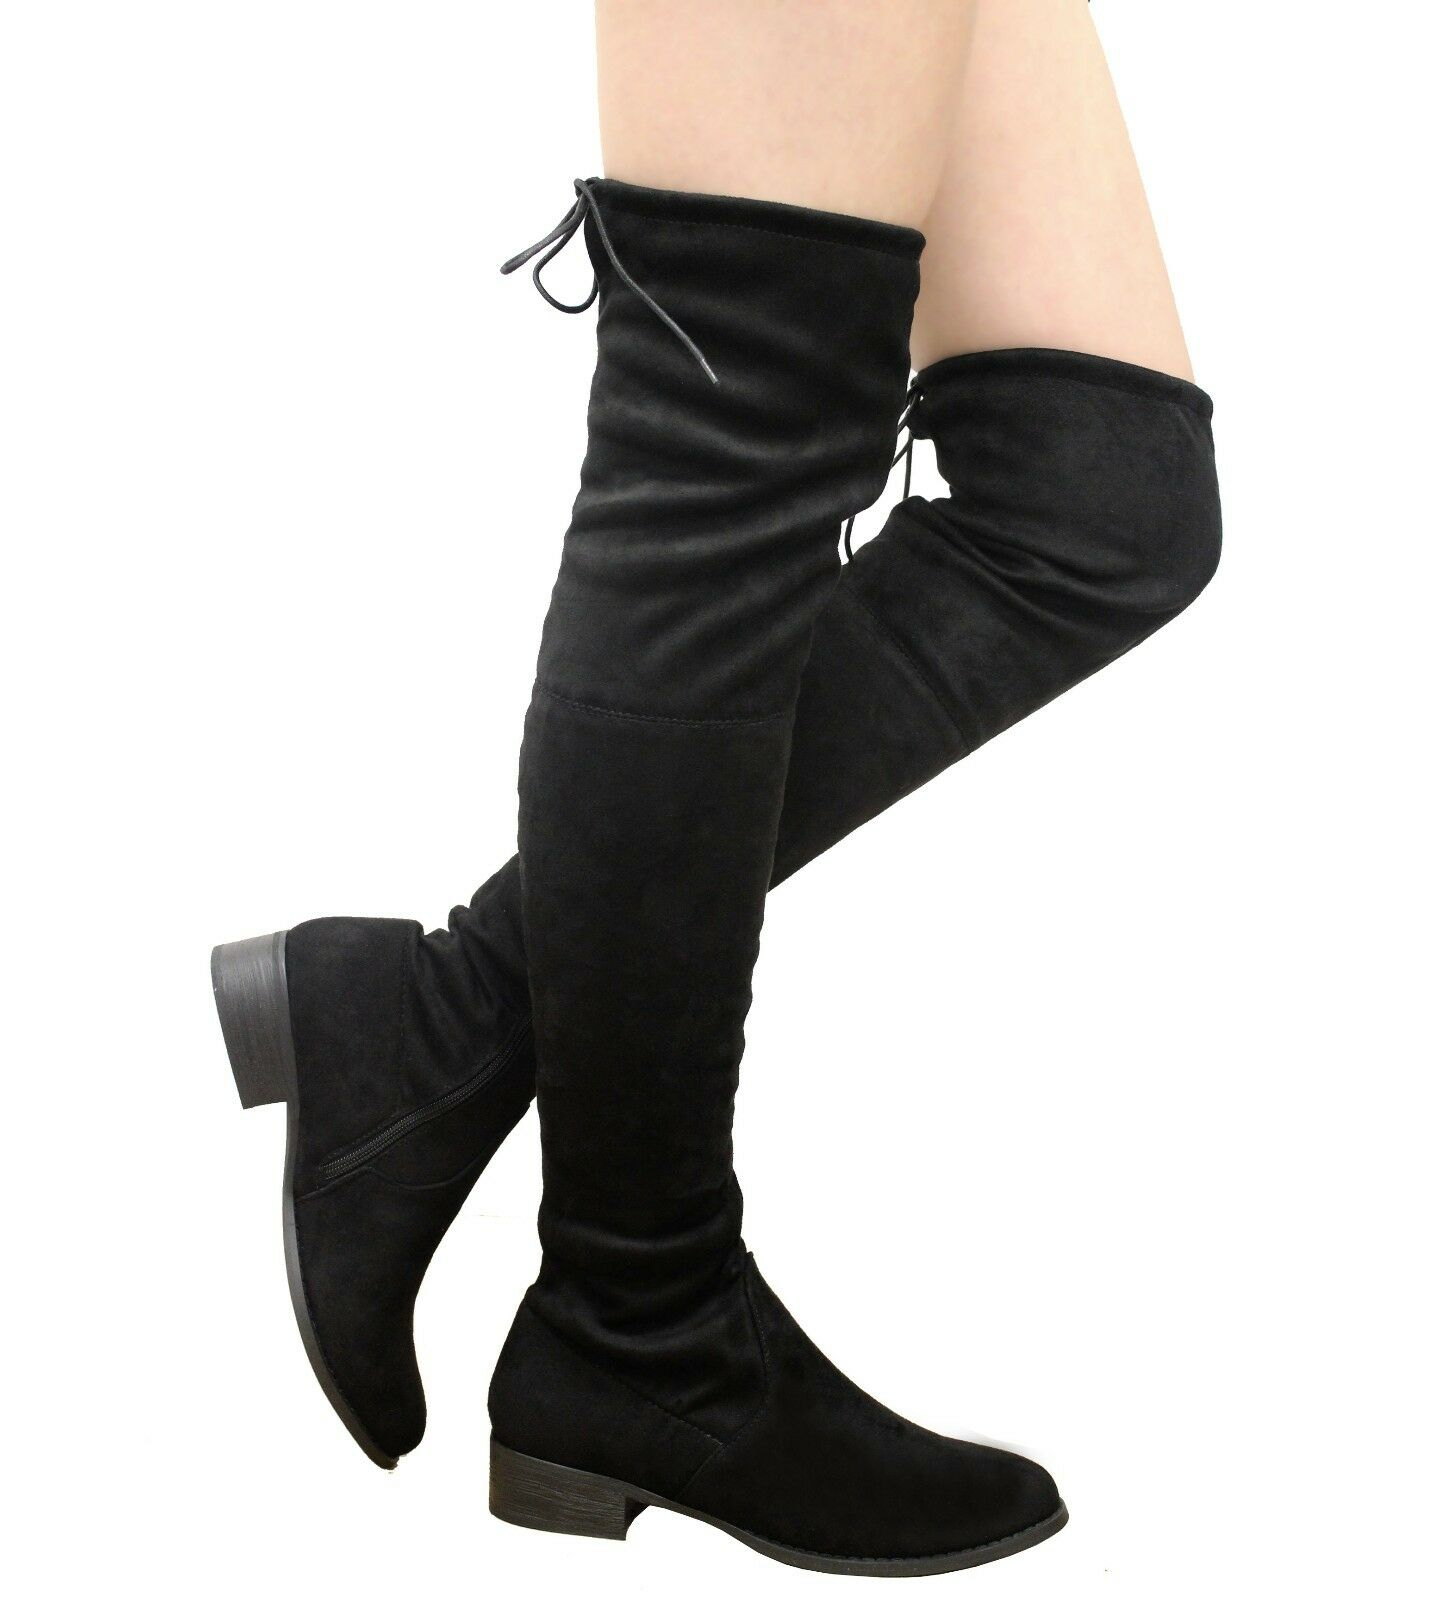 cde99a04d Details about Ladies Womens Thigh High Over The Knee Boots Stretch Lace Up  Mid Heel Shoes Size